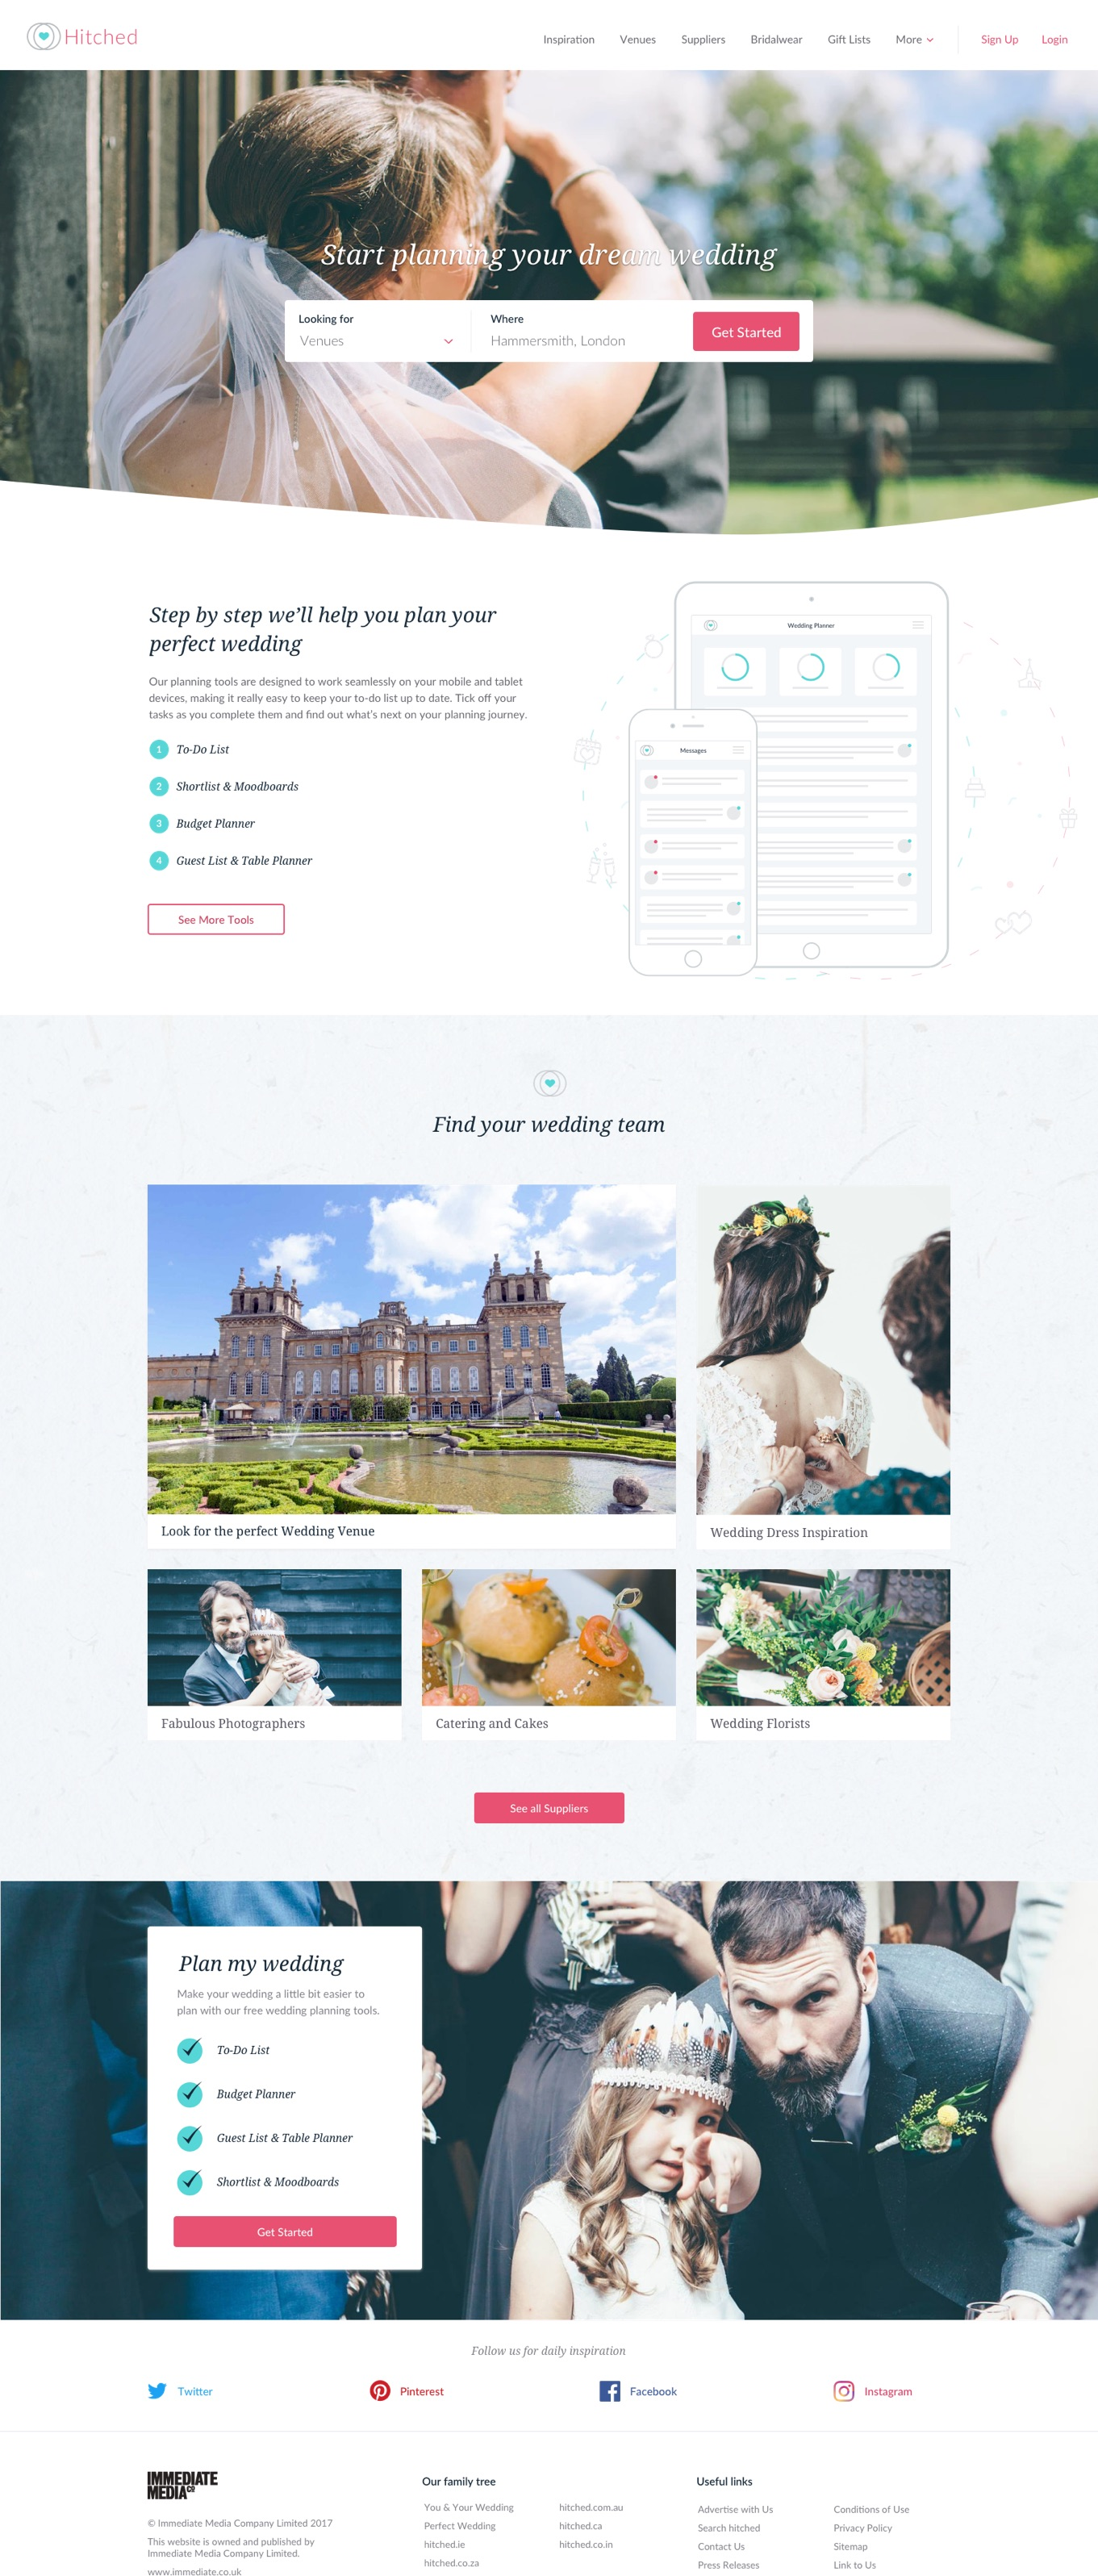 Homepage visual for wedding website